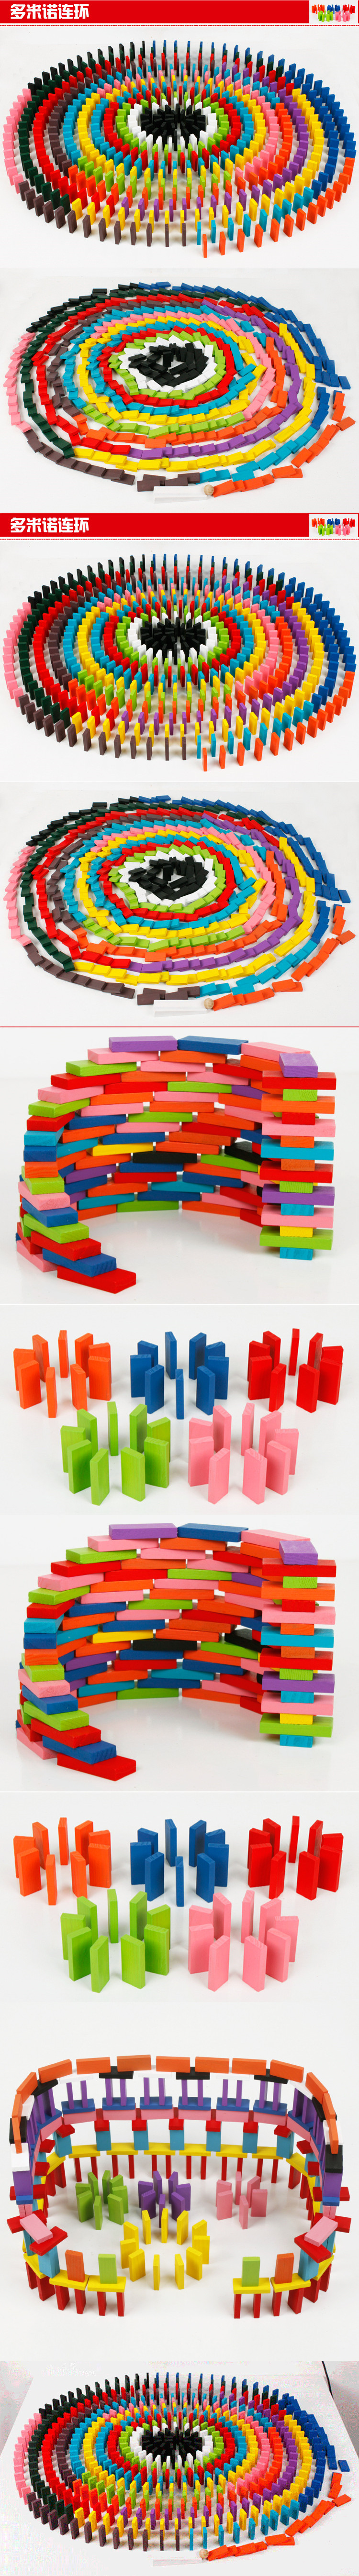 Little B House Colourful Wooden Dominoes 120 piece set -BT21